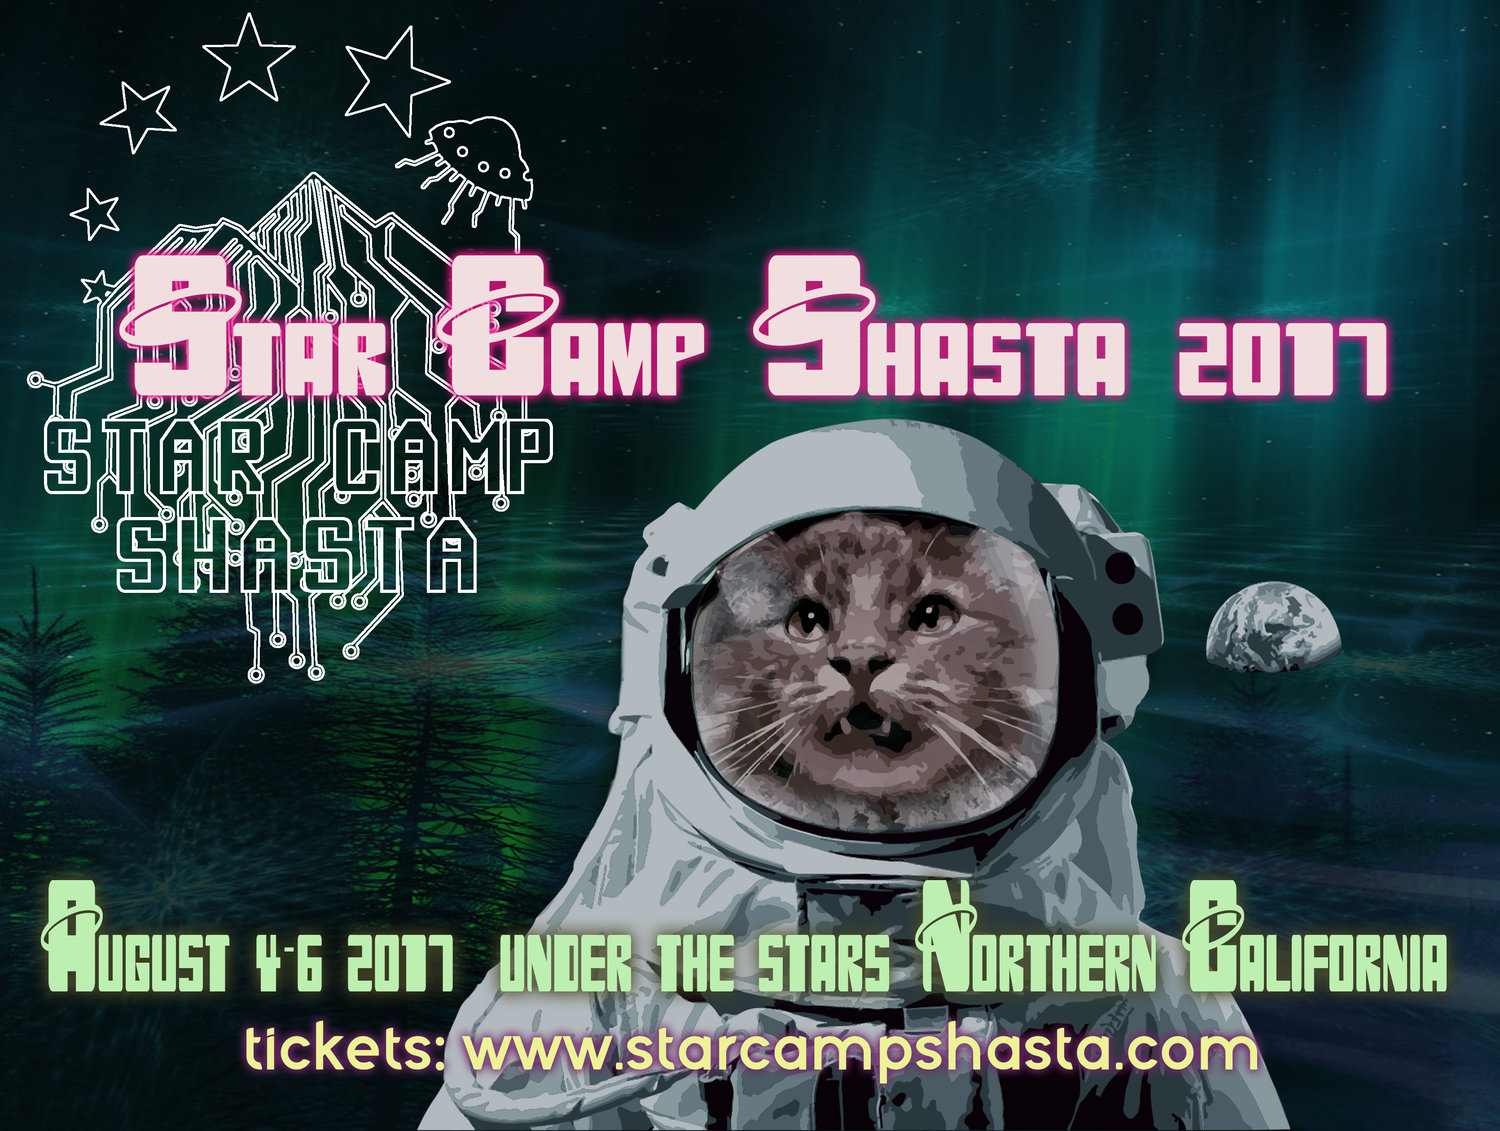 Star Camp Shasta 2017